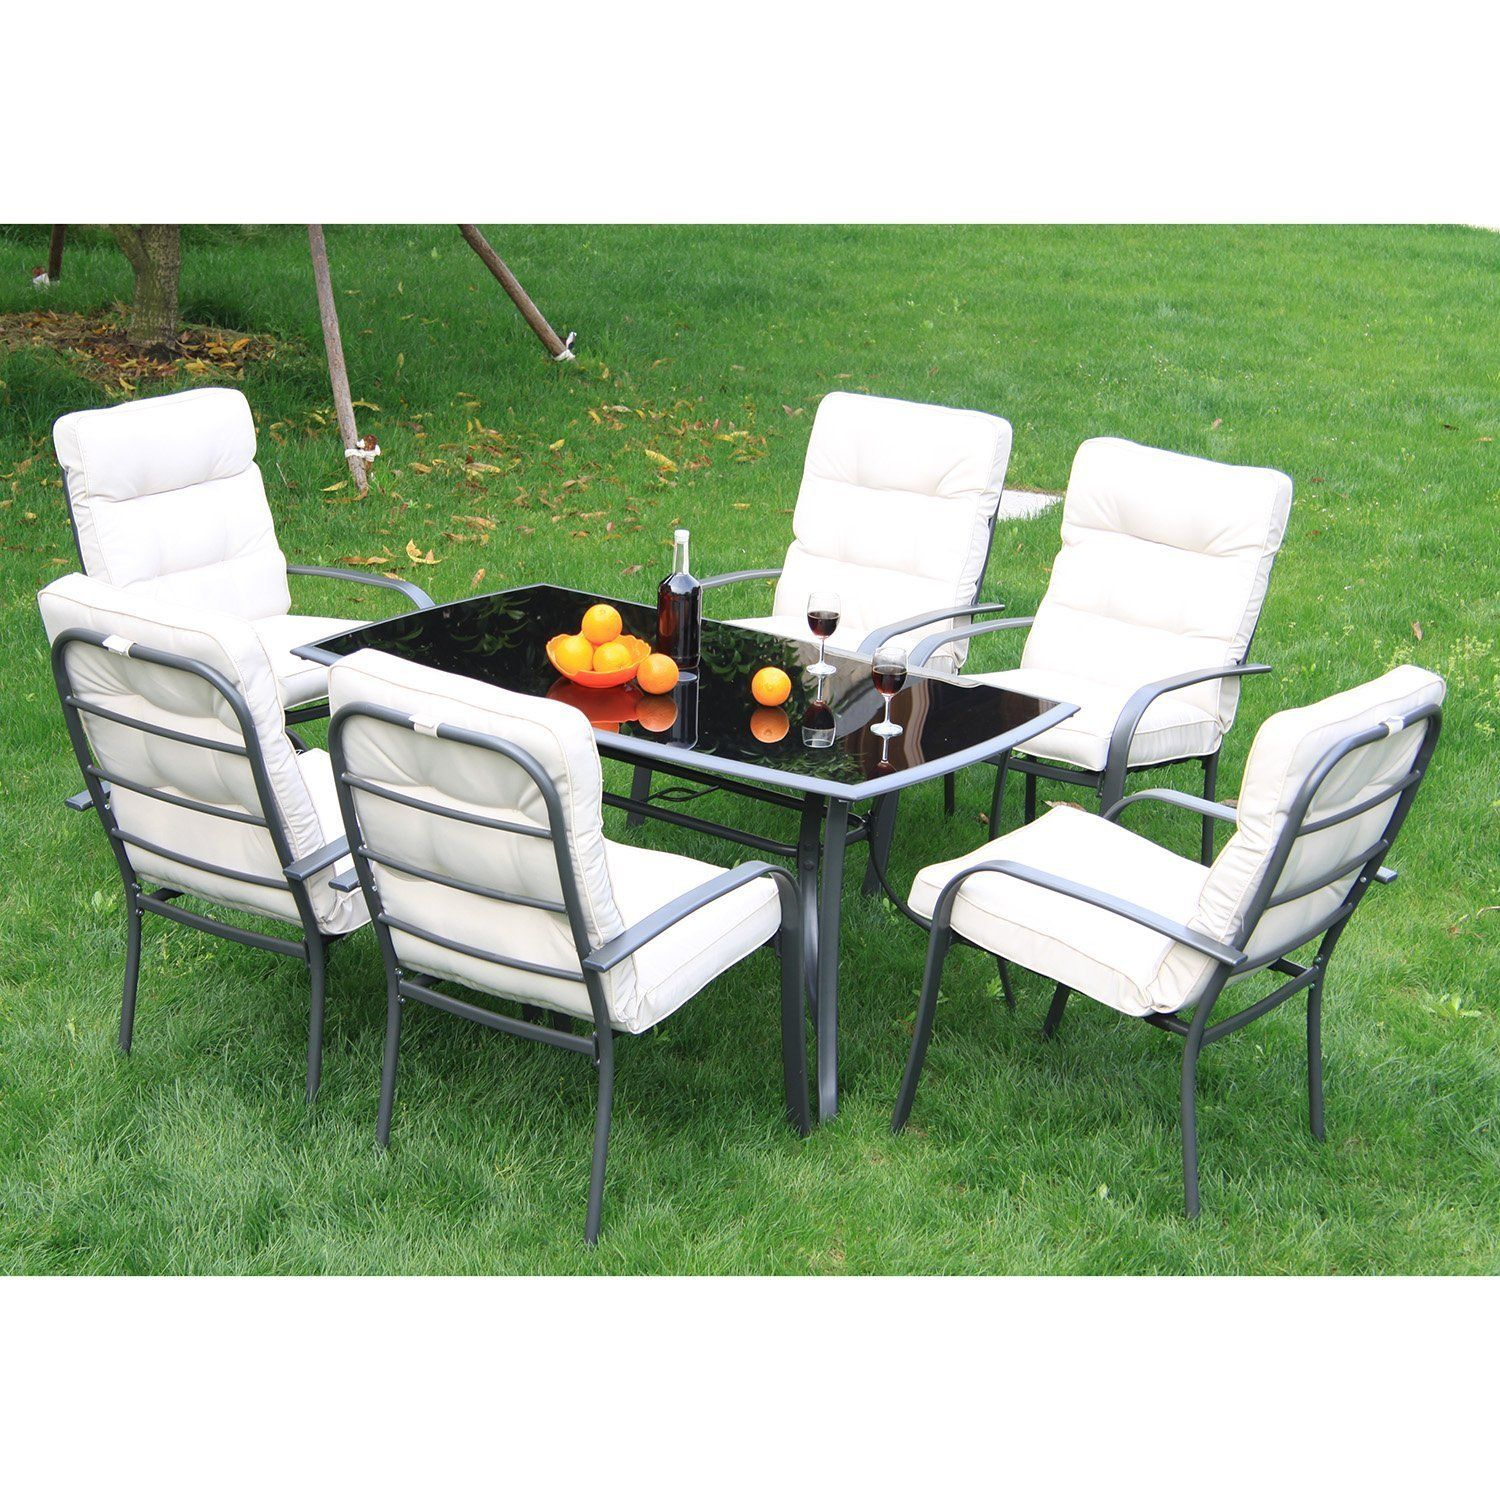 Outsunny 7pc Metal Dining Set Table Chairs Set Garden Patio